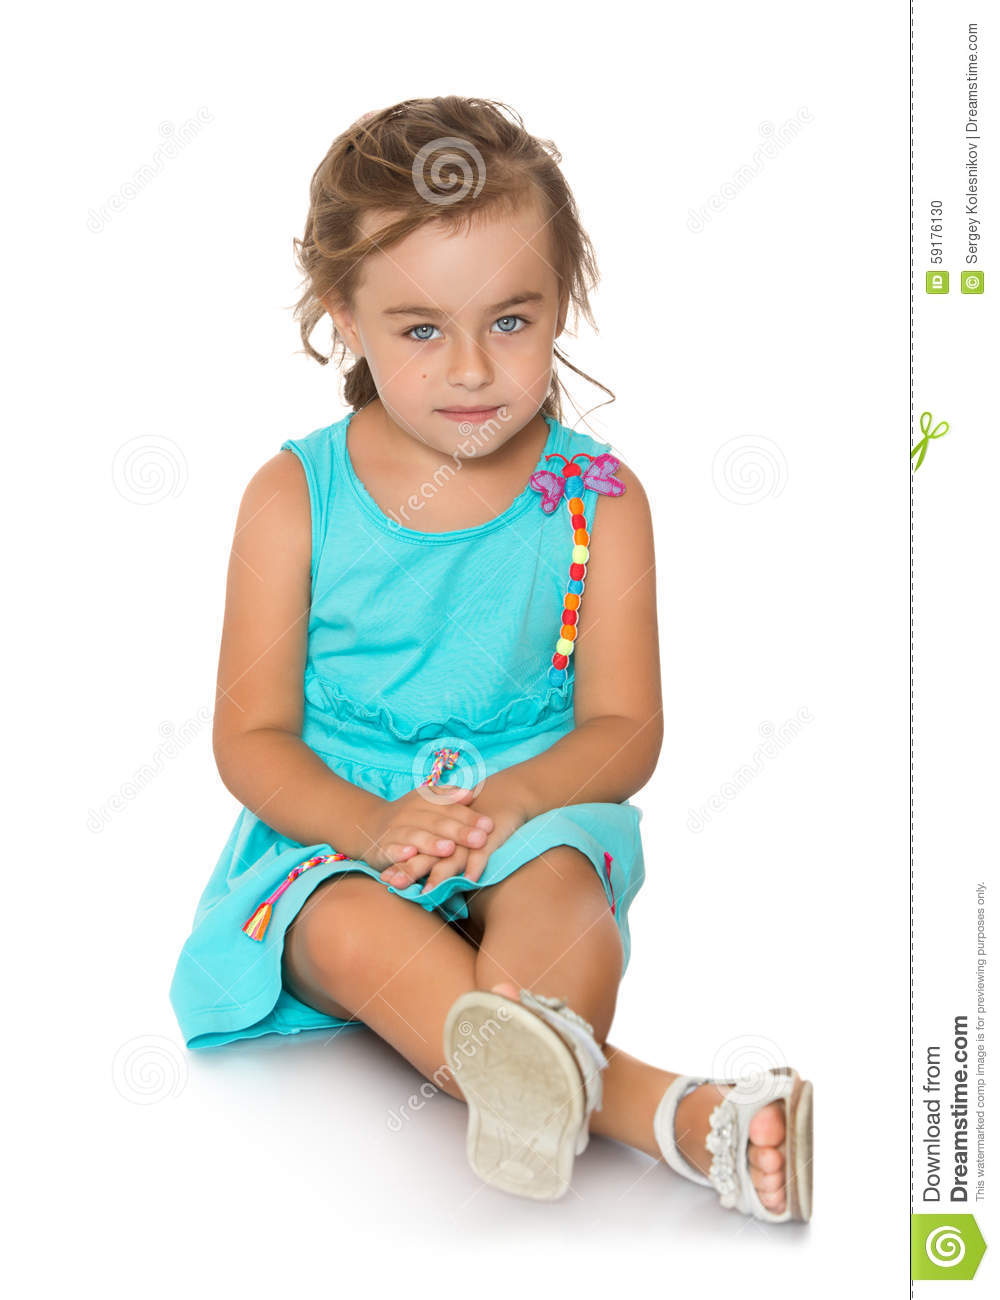 Adorable Little Fashion Girl With Beautiful Hair Stock